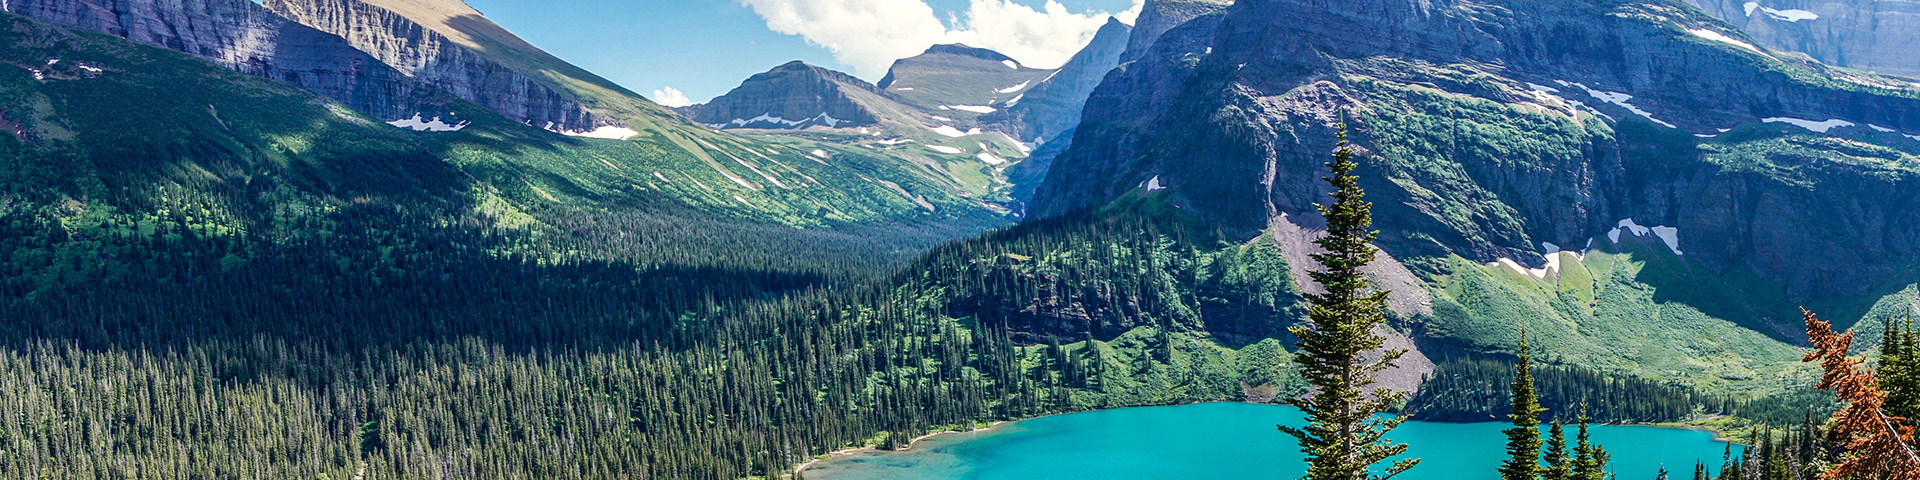 Panoramic views from the Grinnell Glacier Hike in Glacier National Park, Montana